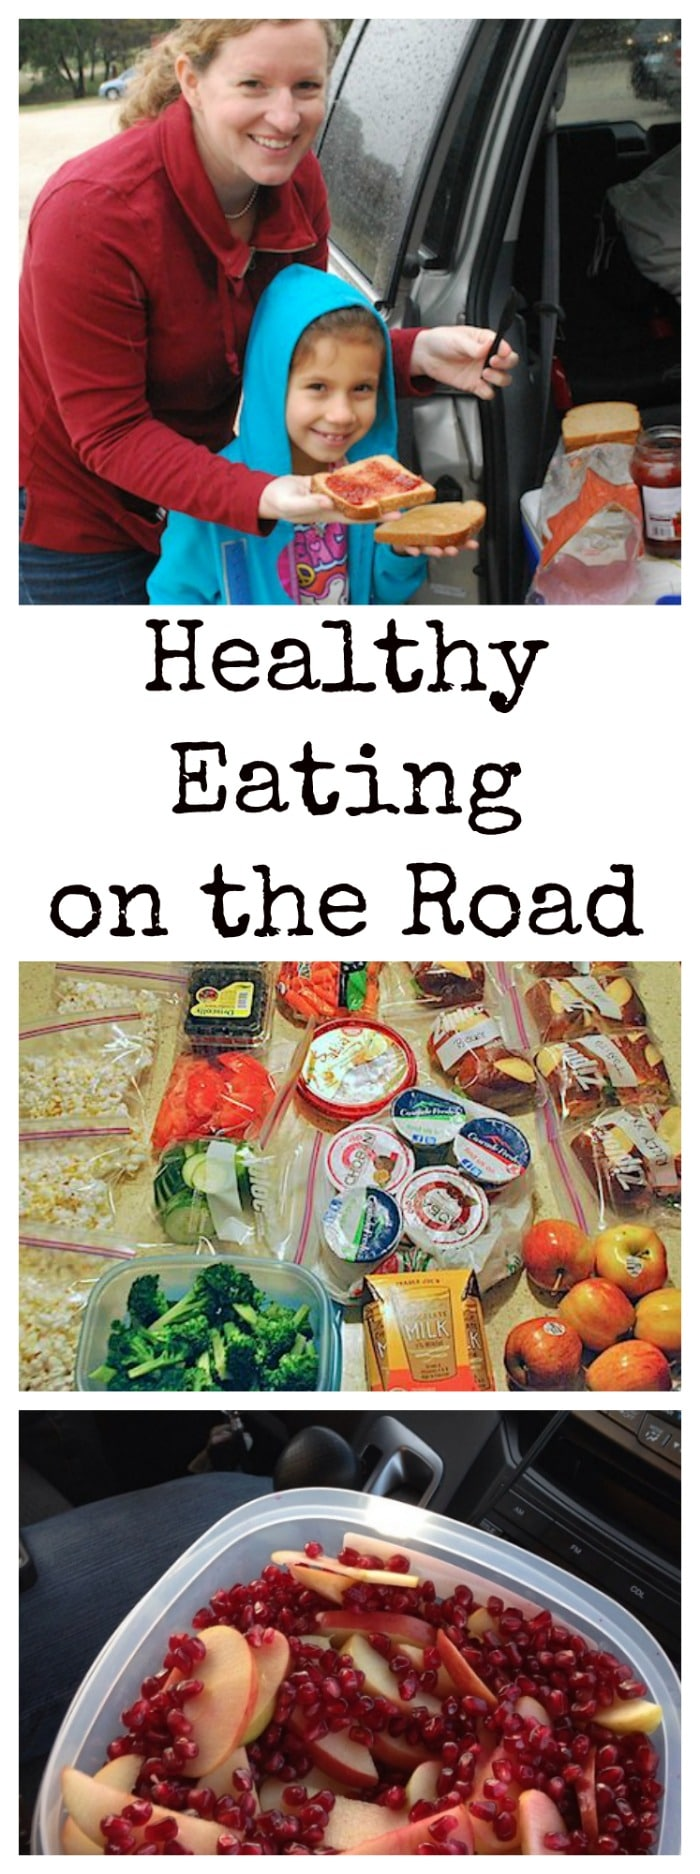 Healthy Food for Road Trips- Kid World Citizen